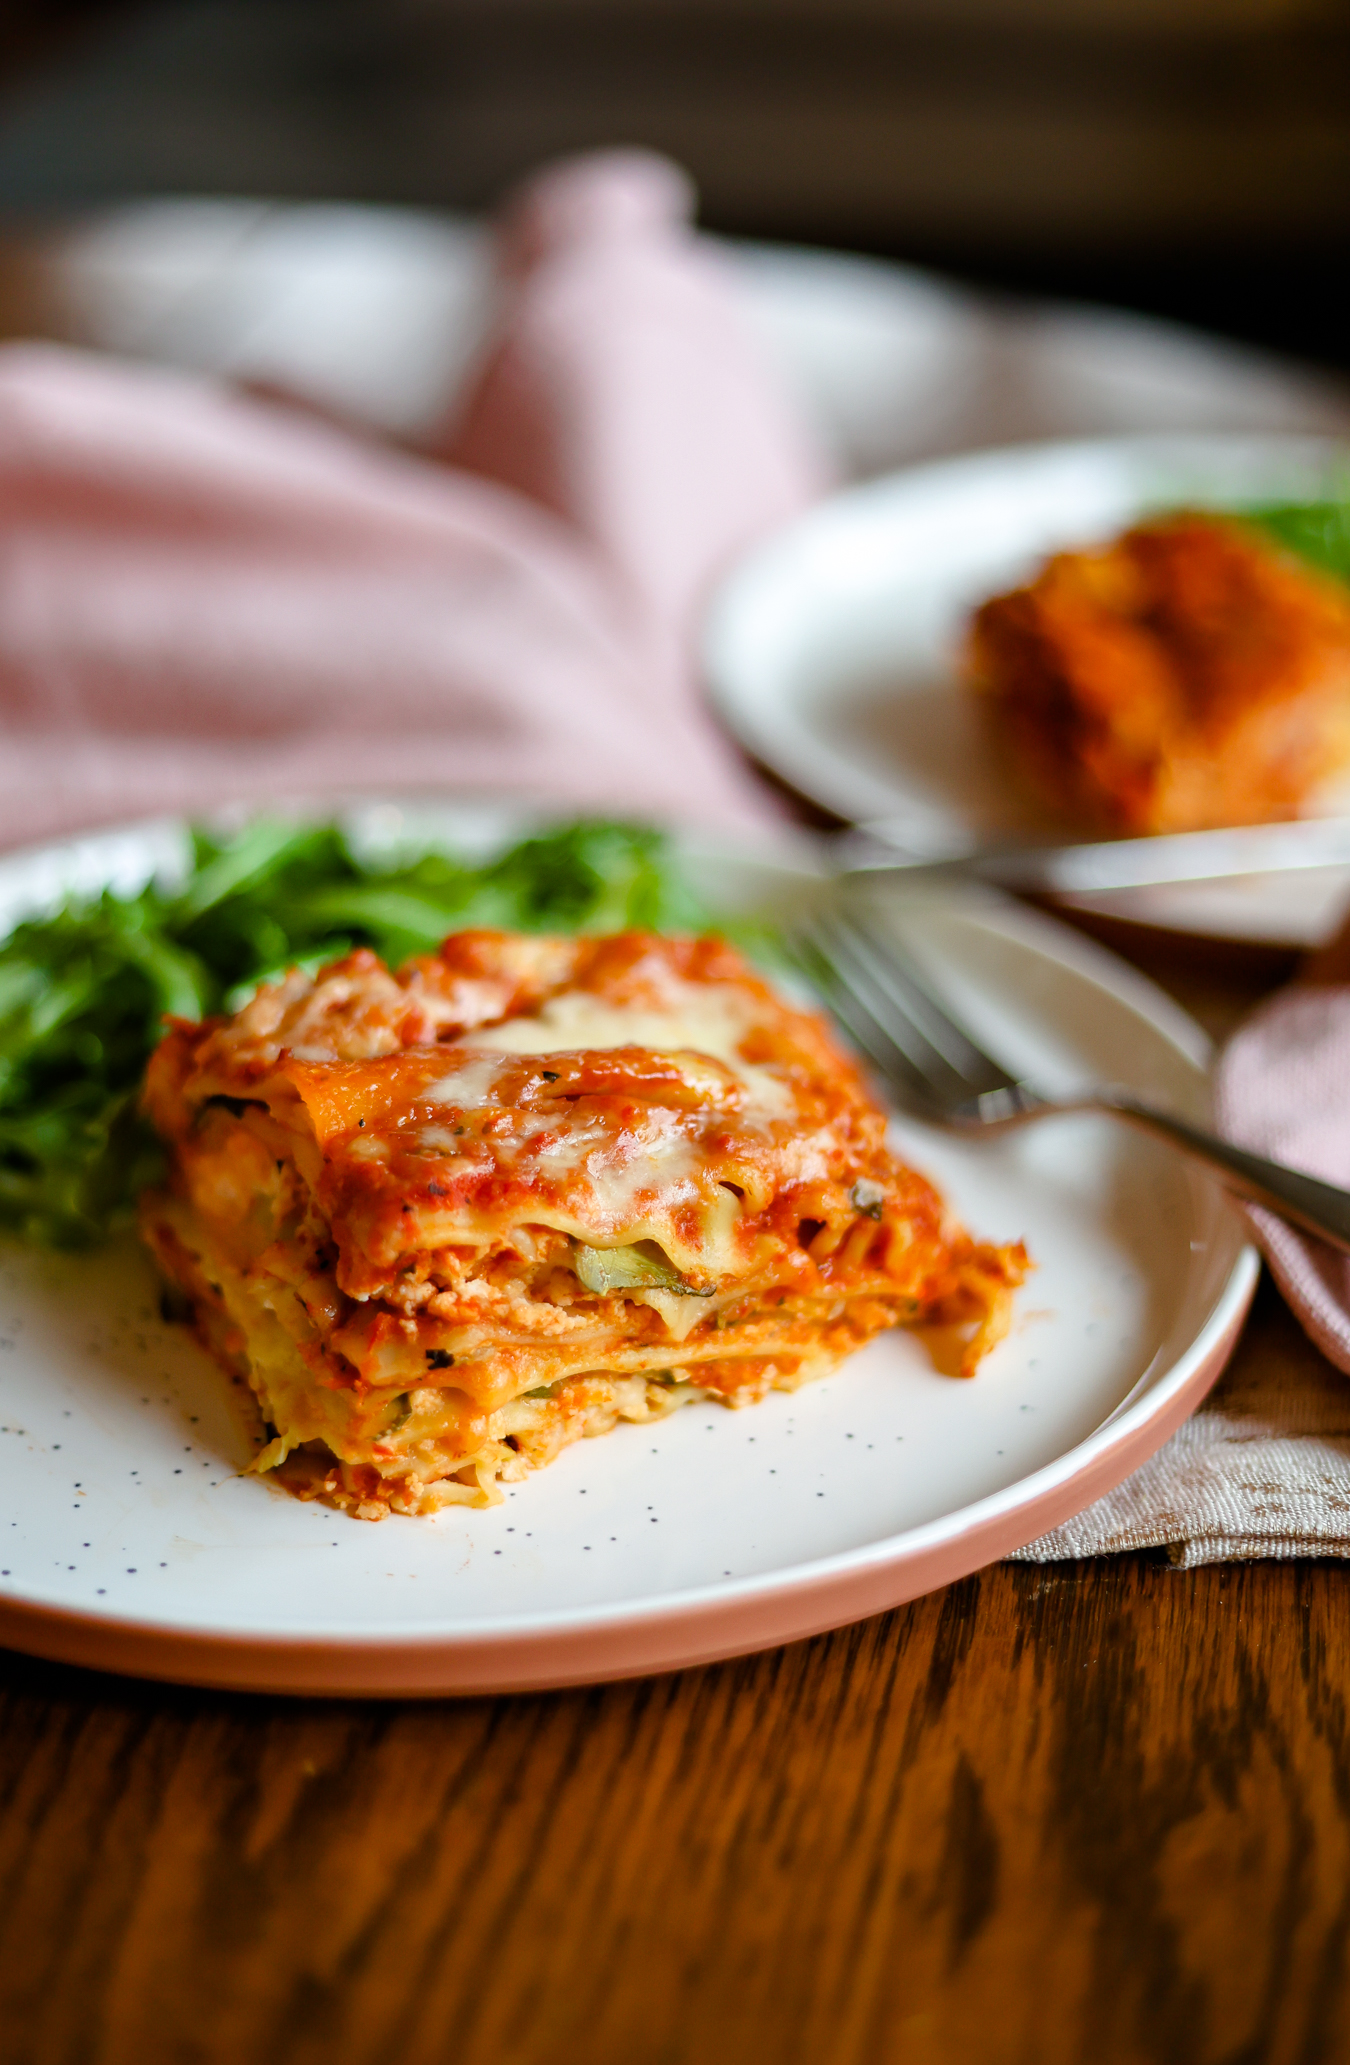 How To Make Crock Pot Lasagna with Zucchini